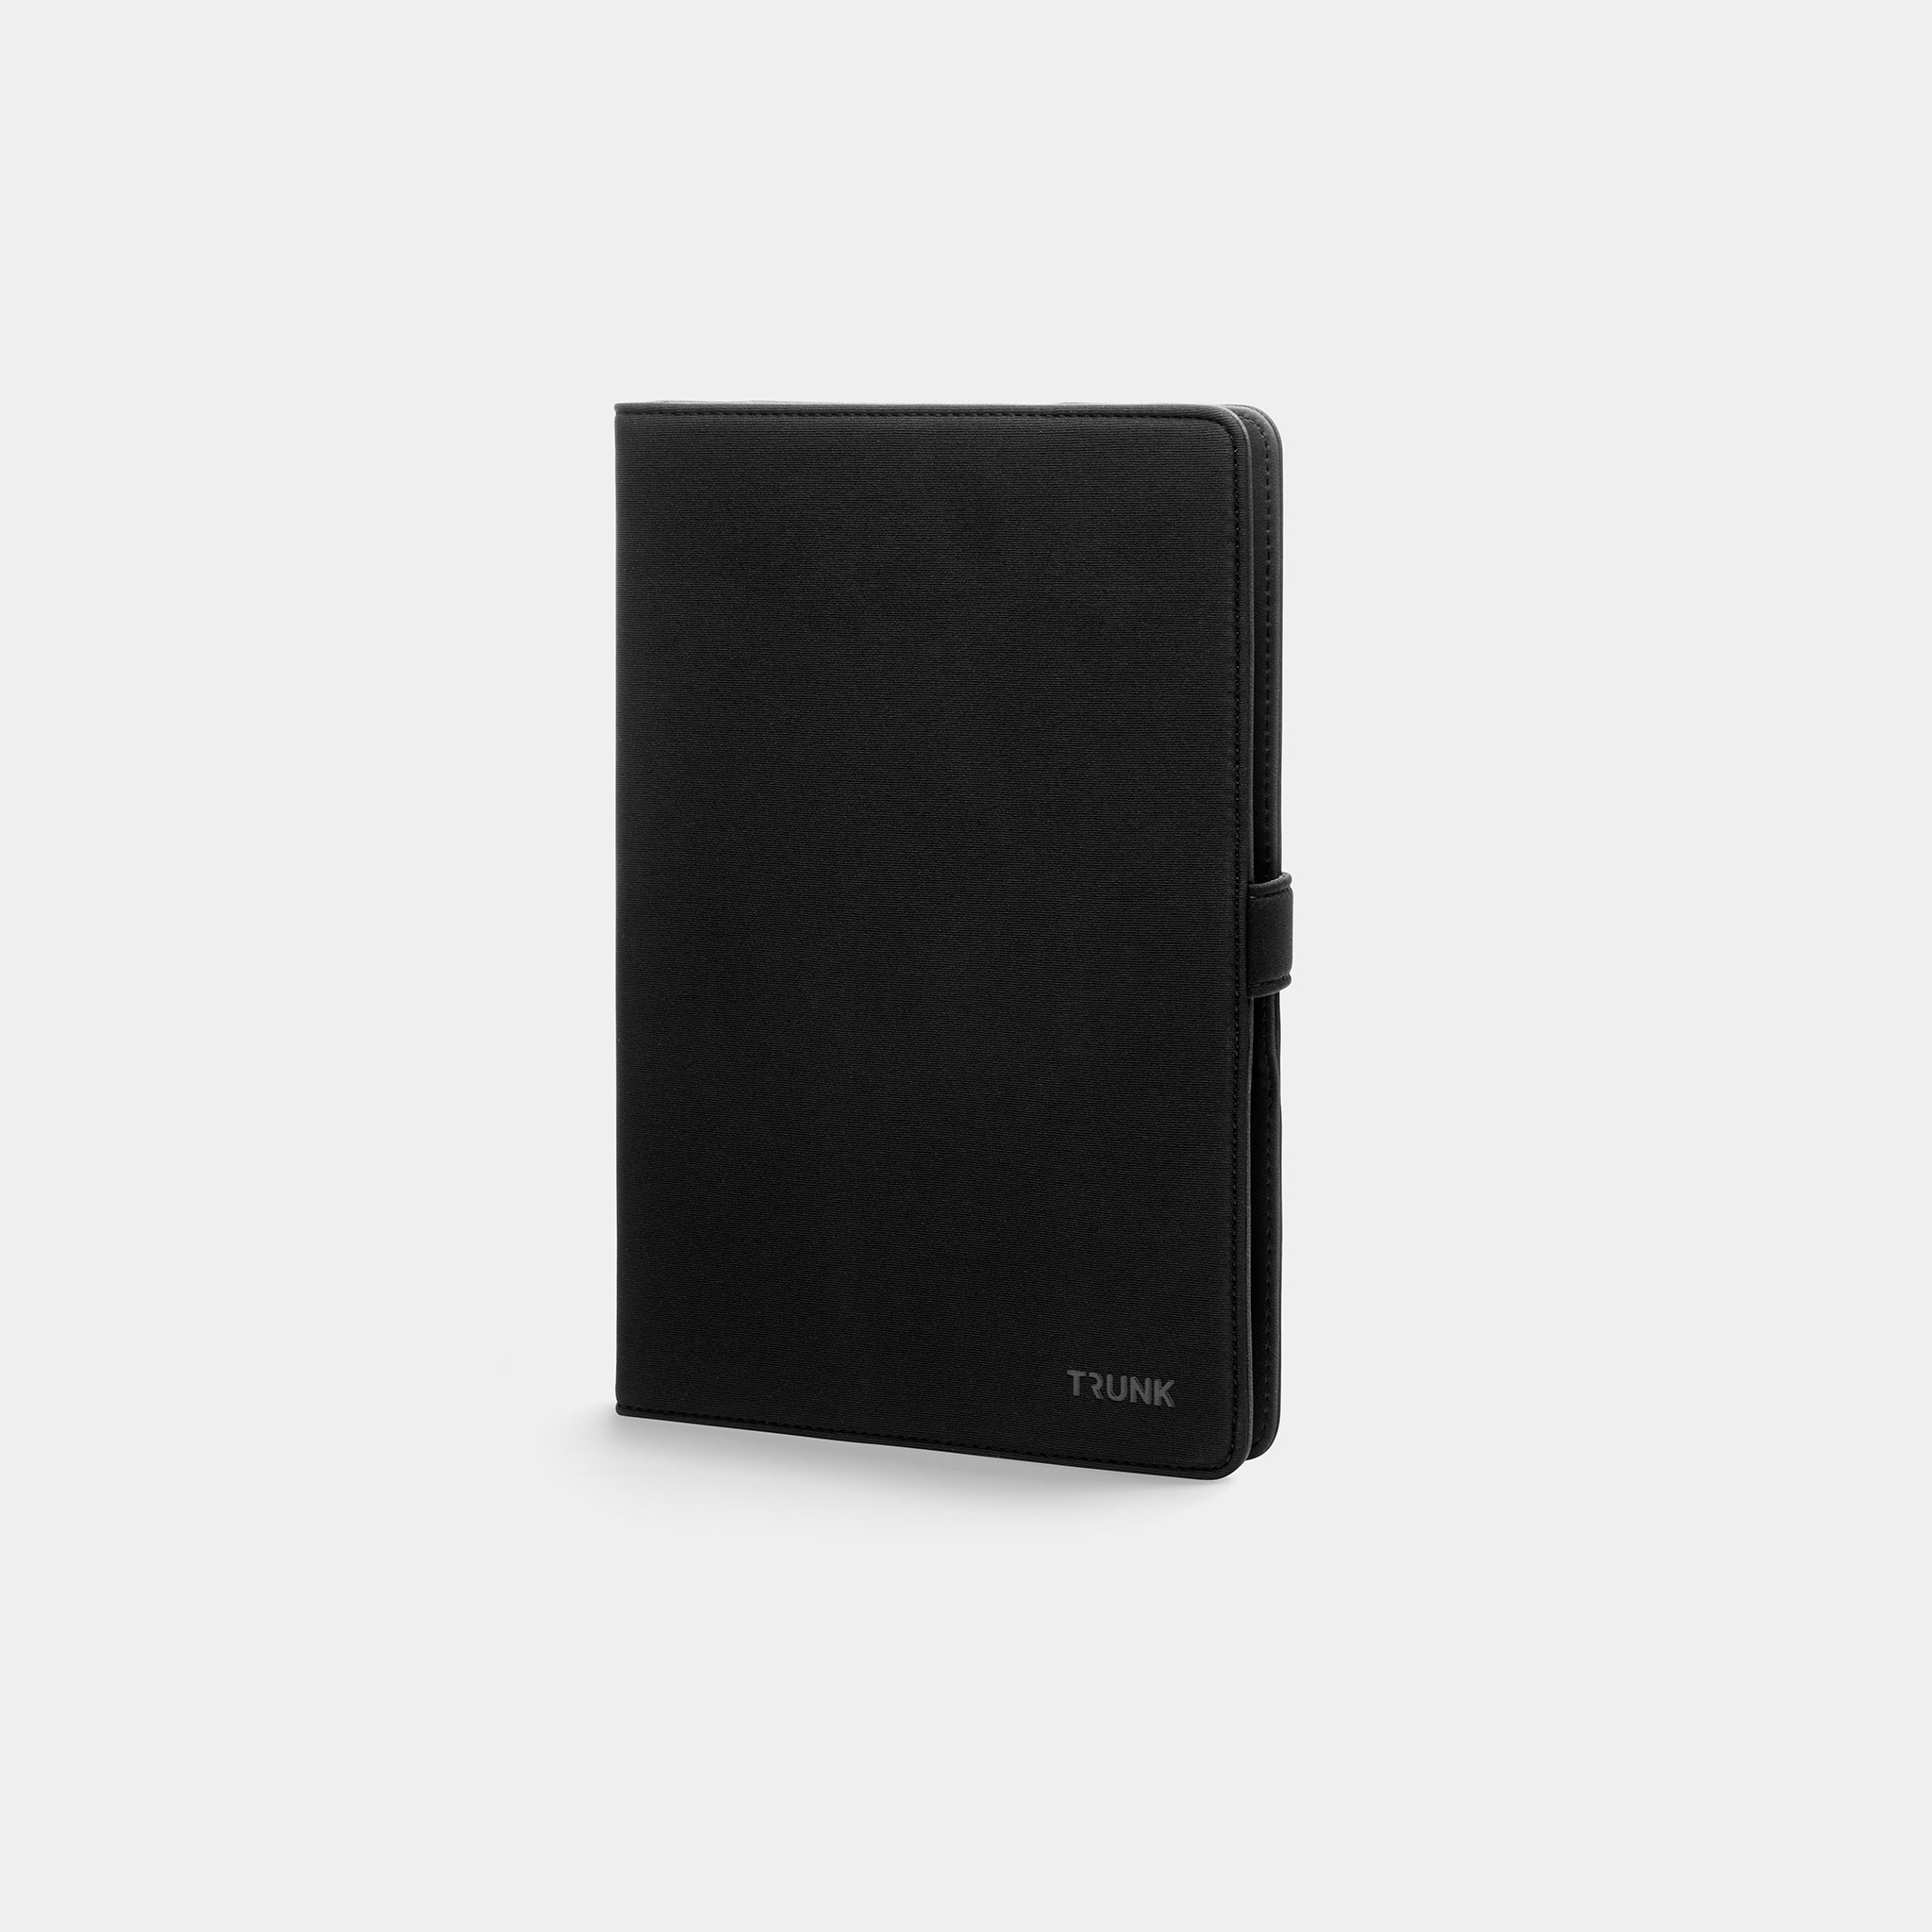 Black Universal Tablet - One size - Neoprene Sleeve